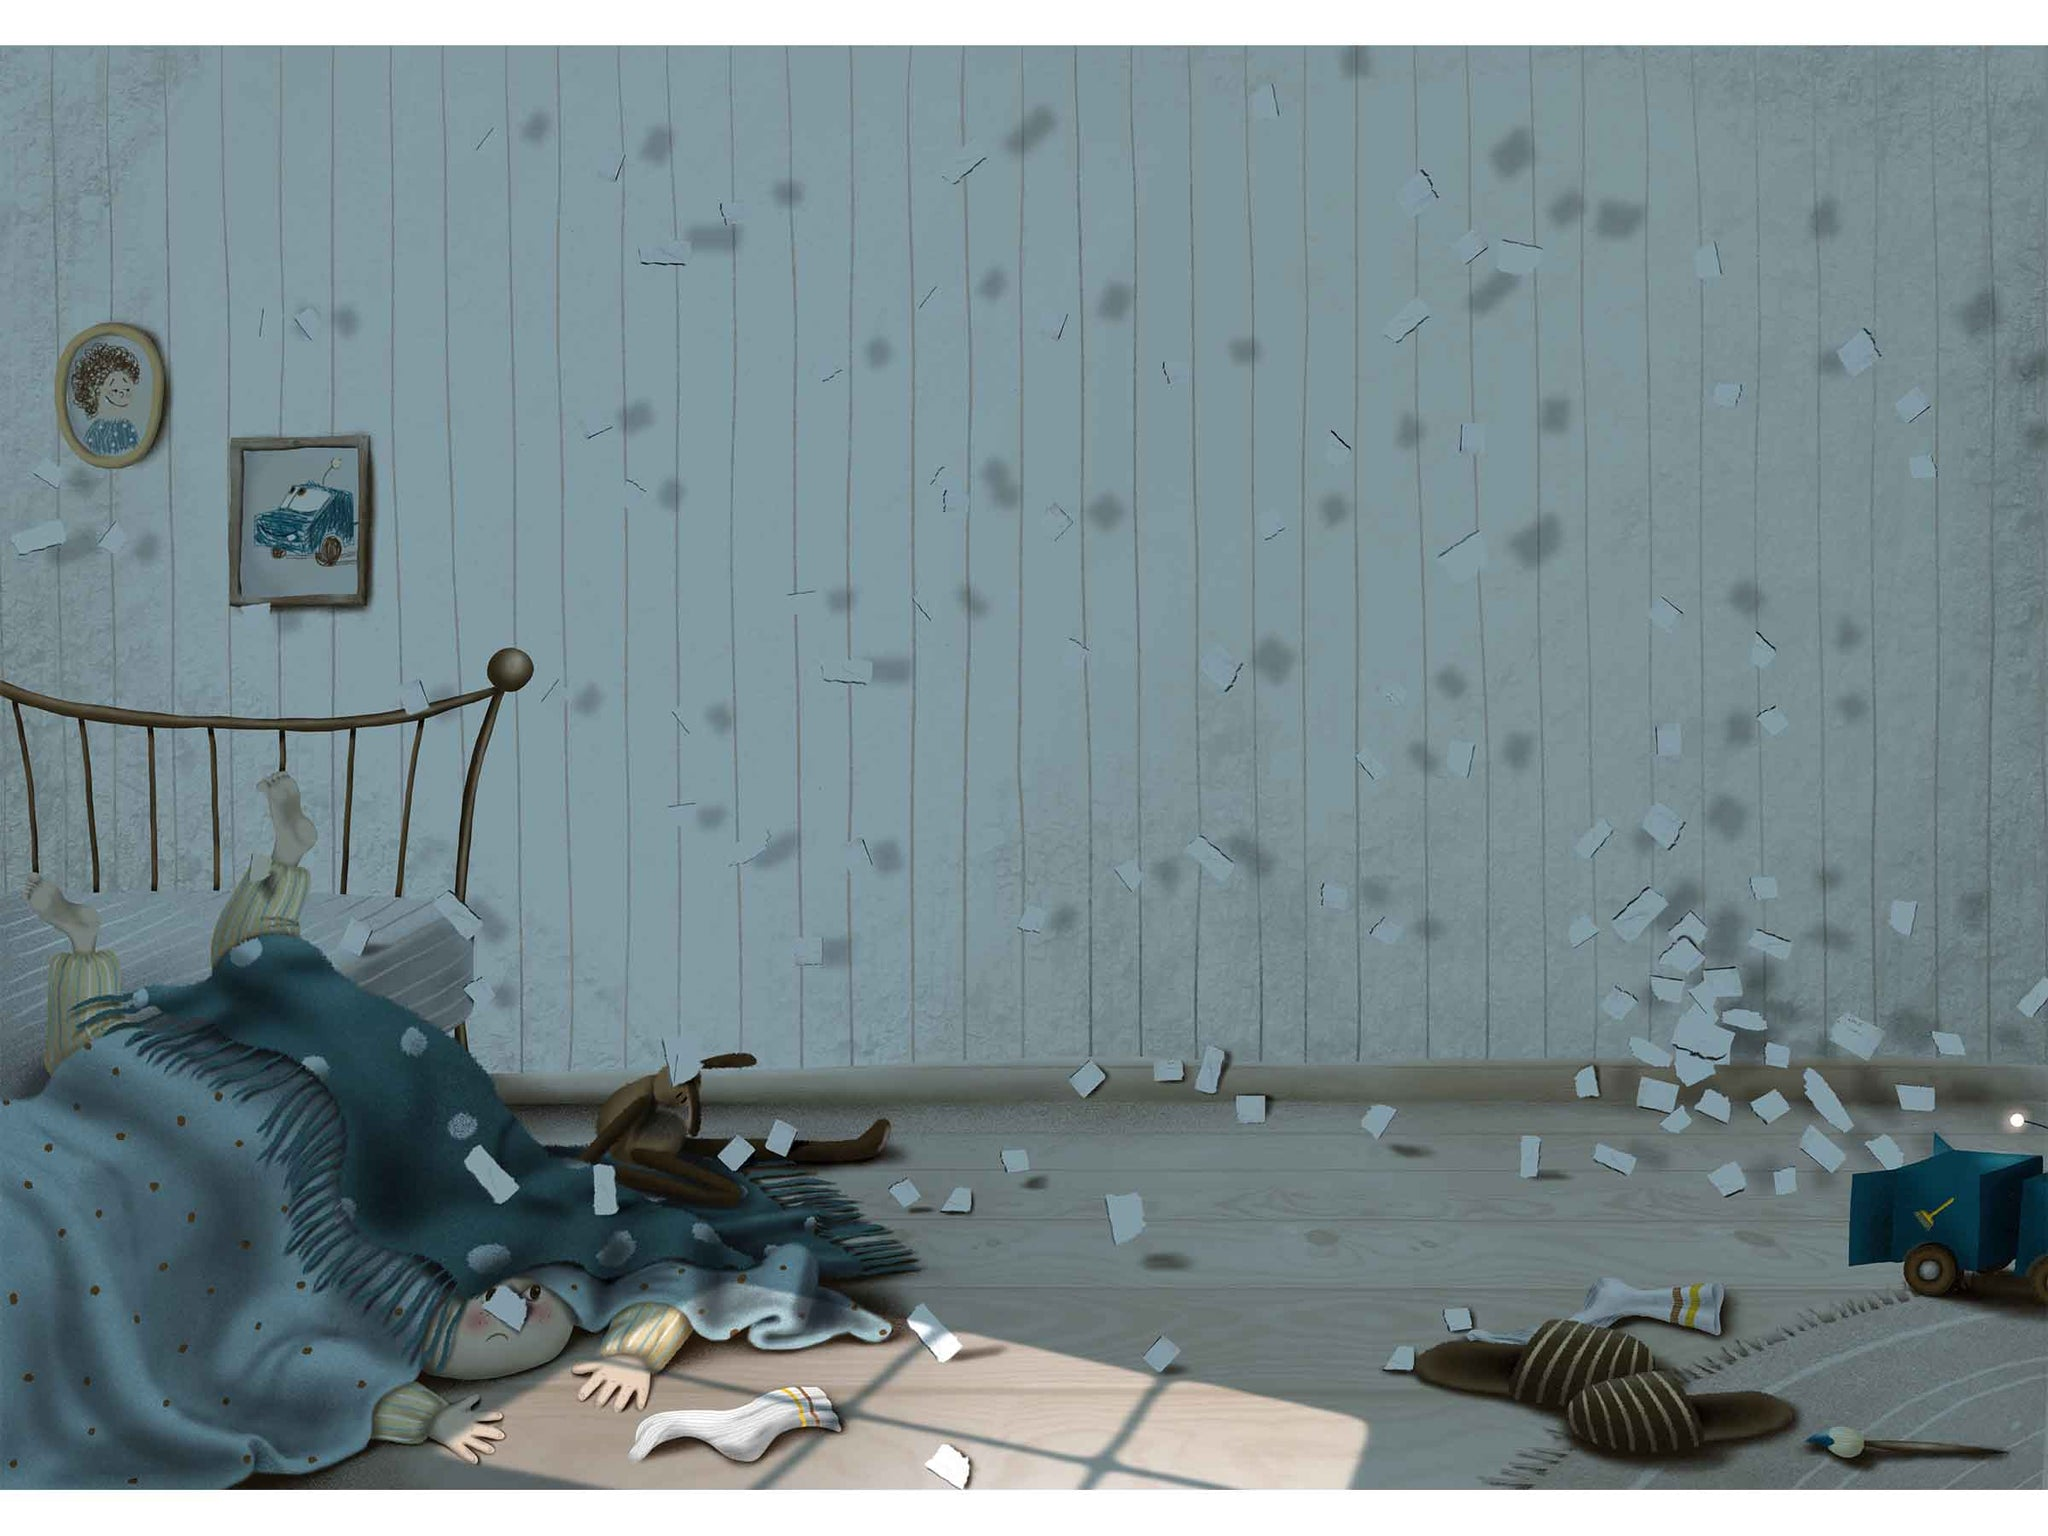 an illustrated image of a room, in the room is a boy who fell from the bed, tiny papers flying around, sleepers, brush and a sock lying on the floor, papers are flying towards a truck toy